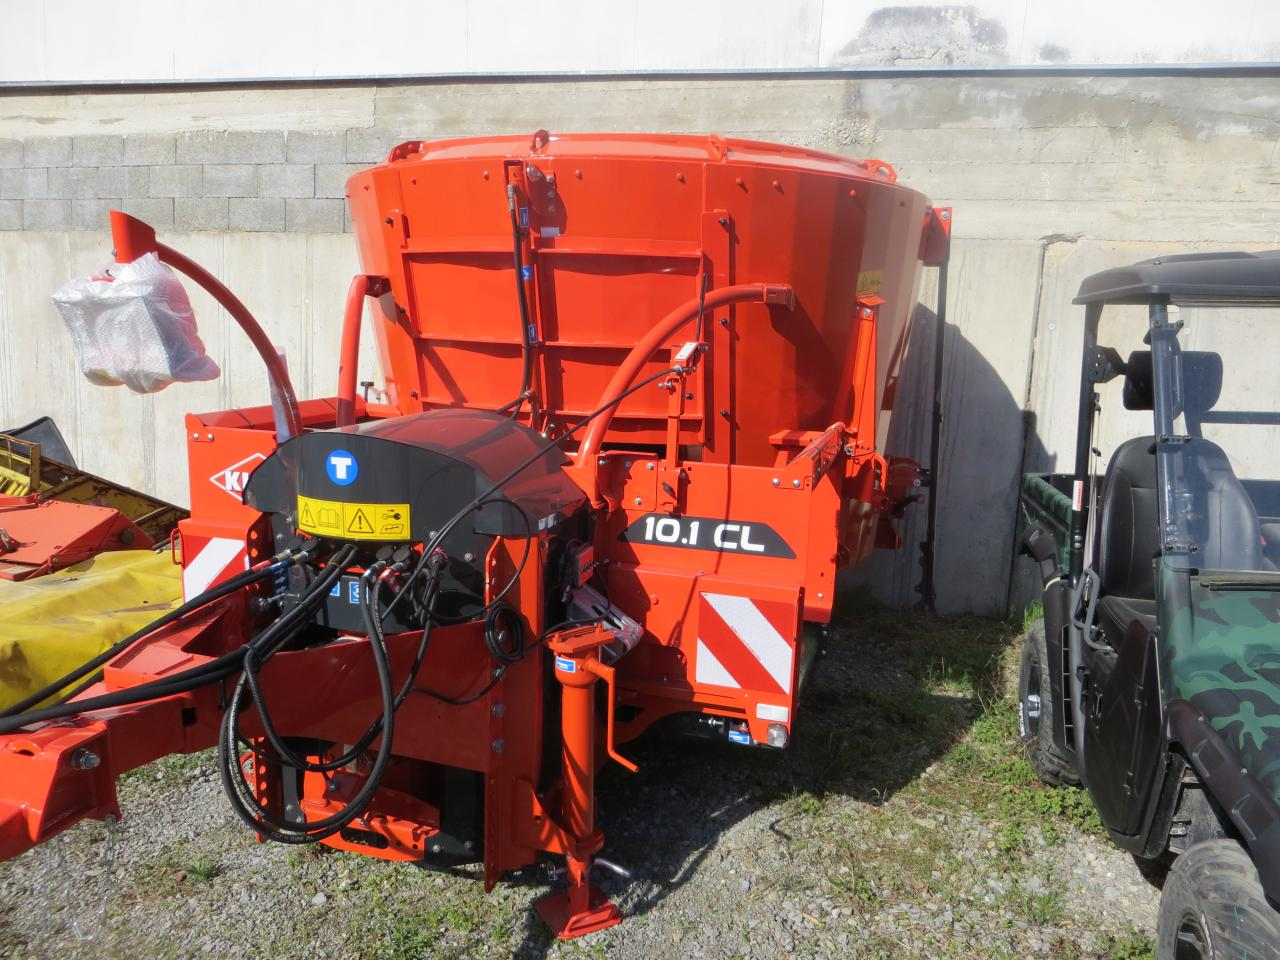 Kuhn Profile 10.1 CL